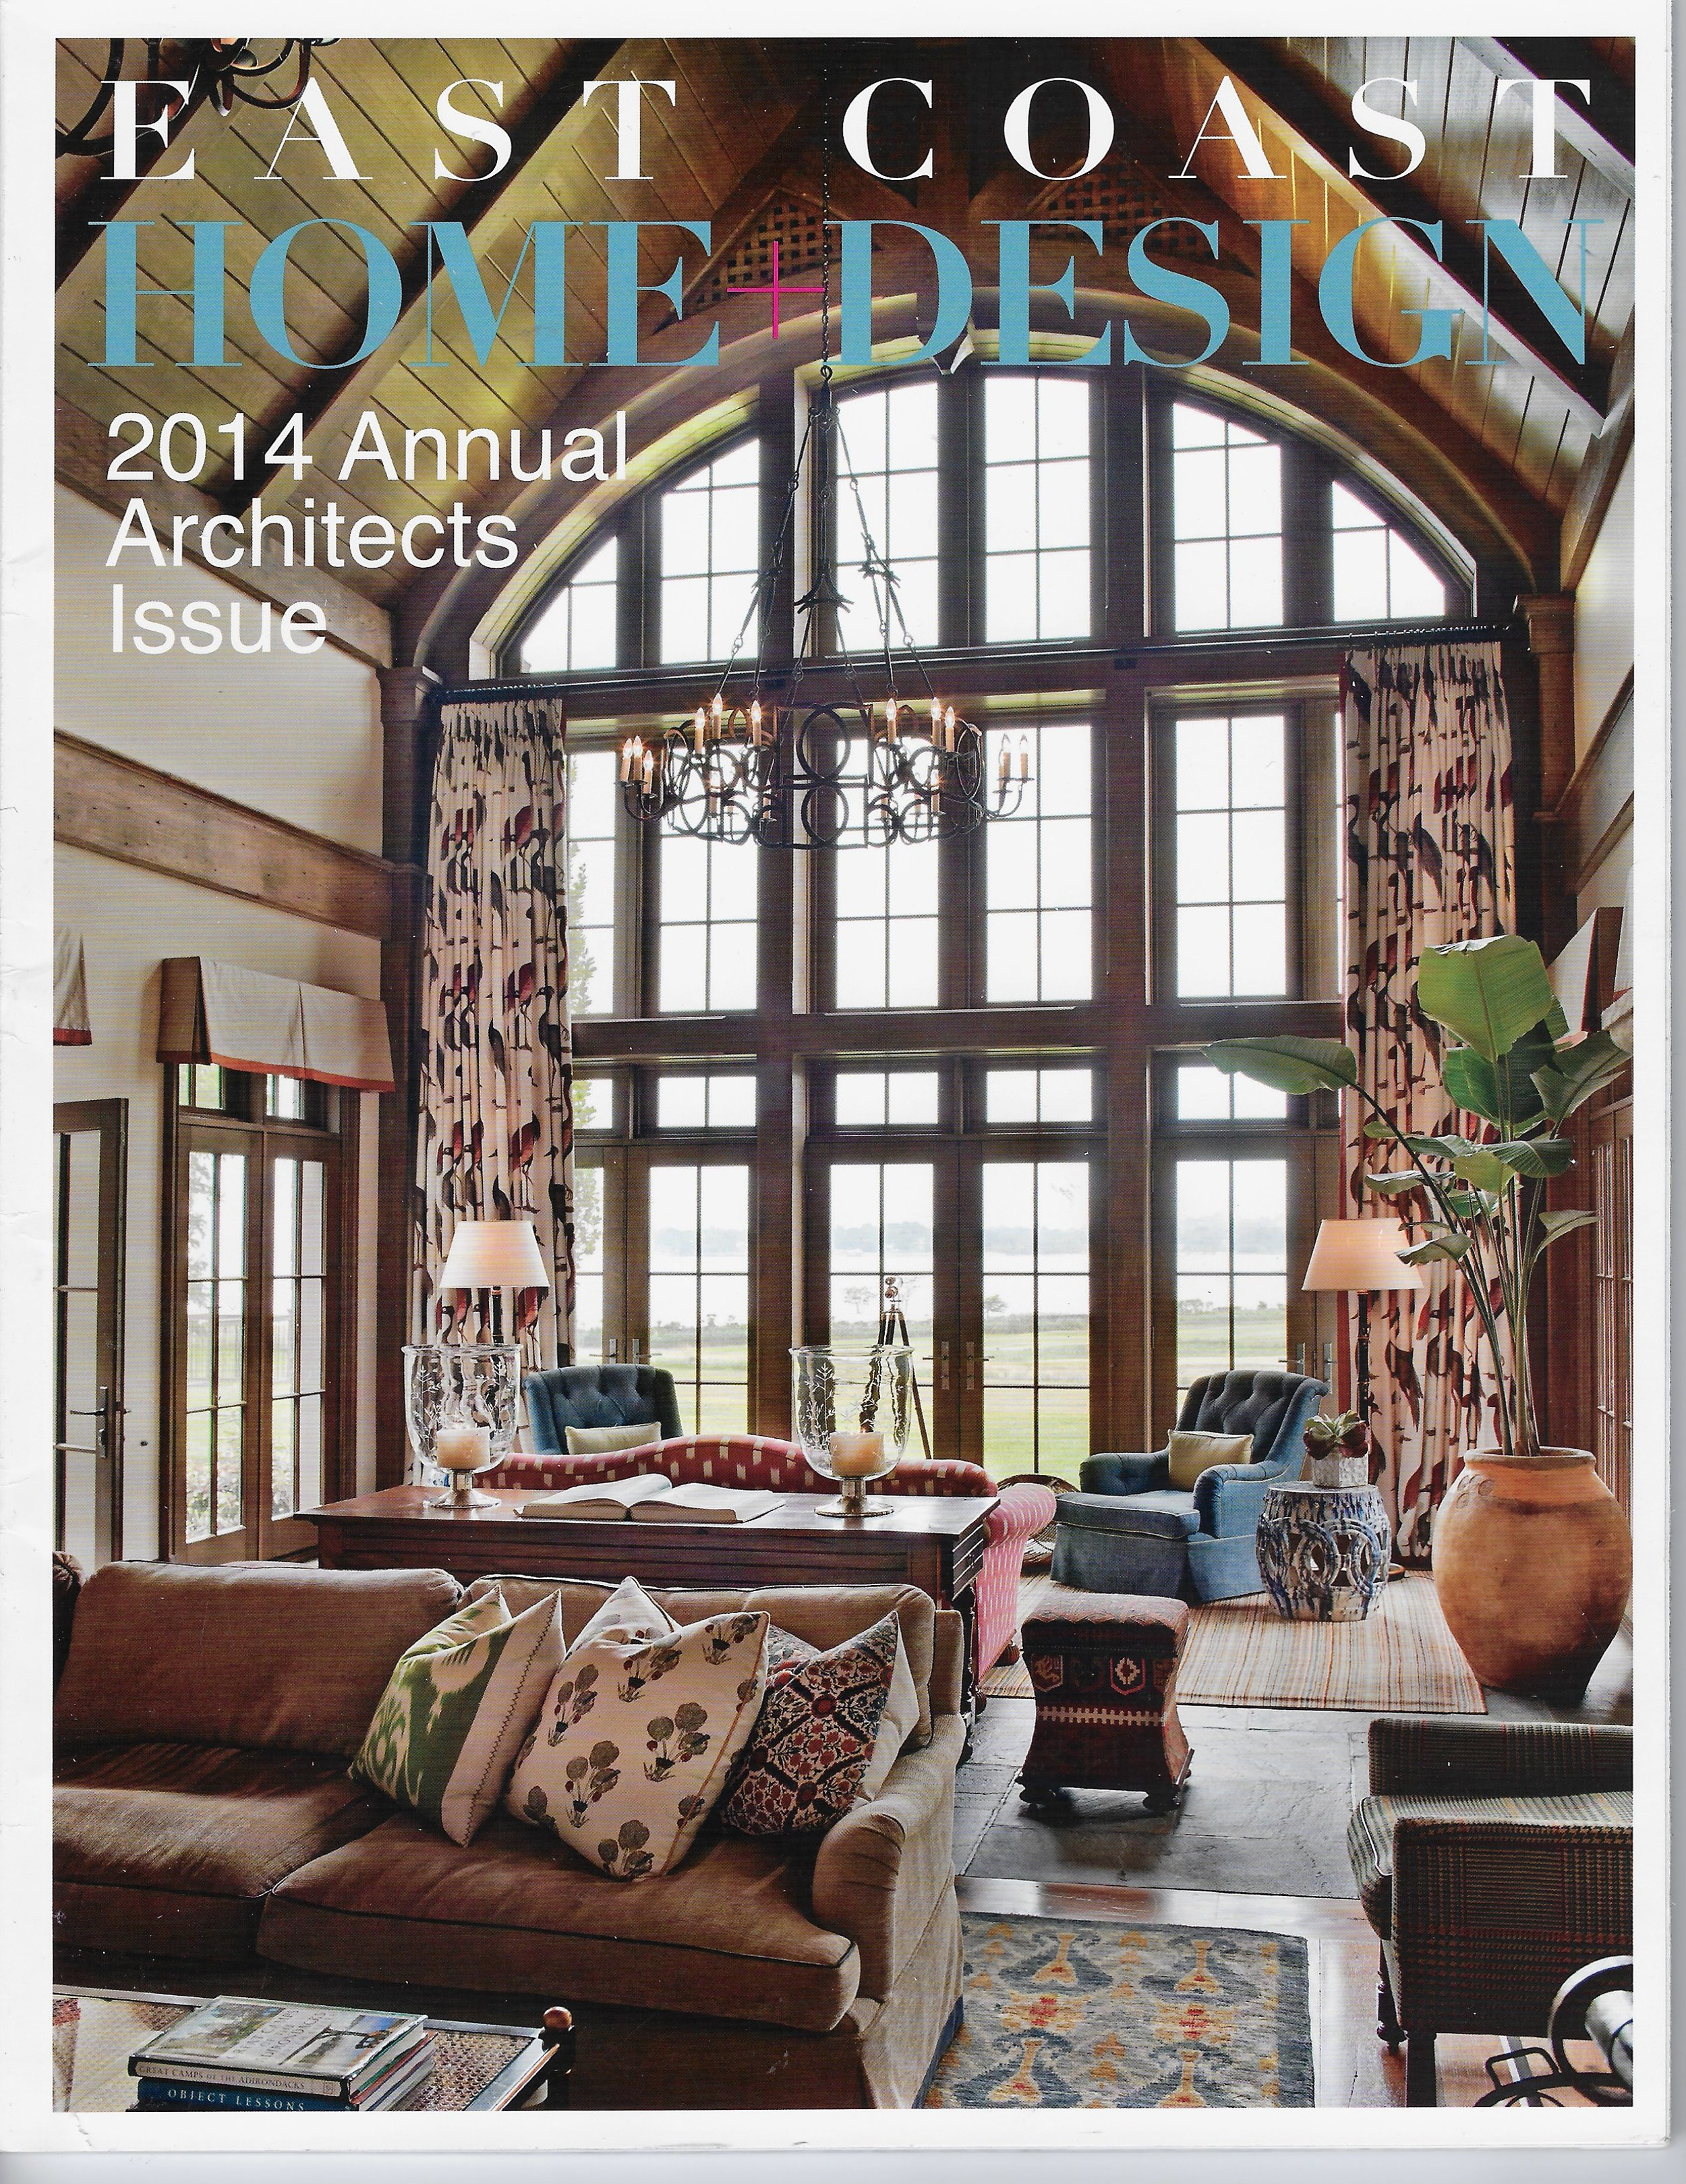 East Coast Home+Design - Nov 2014